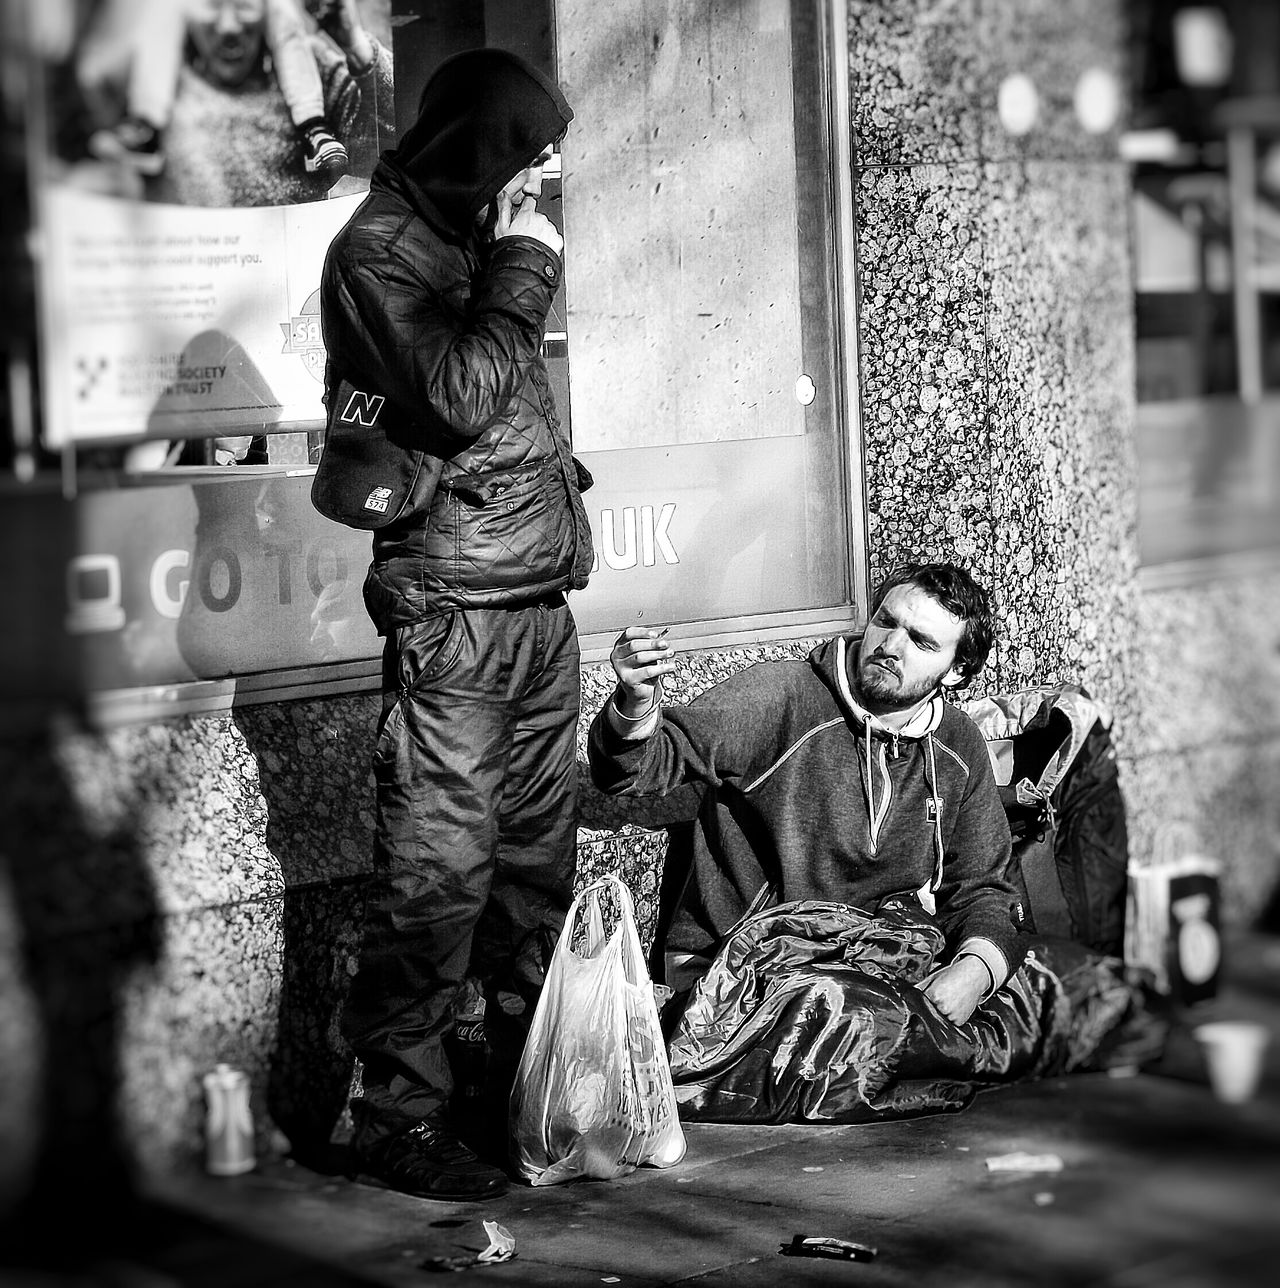 Another capture in my series people of Manchester and Homeless of Manchester UK People Of Manchester Taking Photos Black & White Photography Black And White Photography People Photography Black And White Collection  Street Photography Black & White Monochrome EyeEm Best Shots - Black + White Urban Life City Life Streetphoto_bw Eyeem Streetphotography Homeless Of Manchester Uk Homeless People Watching Creative Light And Shadow Shades Of Grey Black And White Photography Monocrome Homeless People HDR Fujifilm Bnw_collection Photojournalist Eyeem 2016 Street Photography - EyeEm Awards 2016 EyeEm Documentary Photography Telling Stories Differently